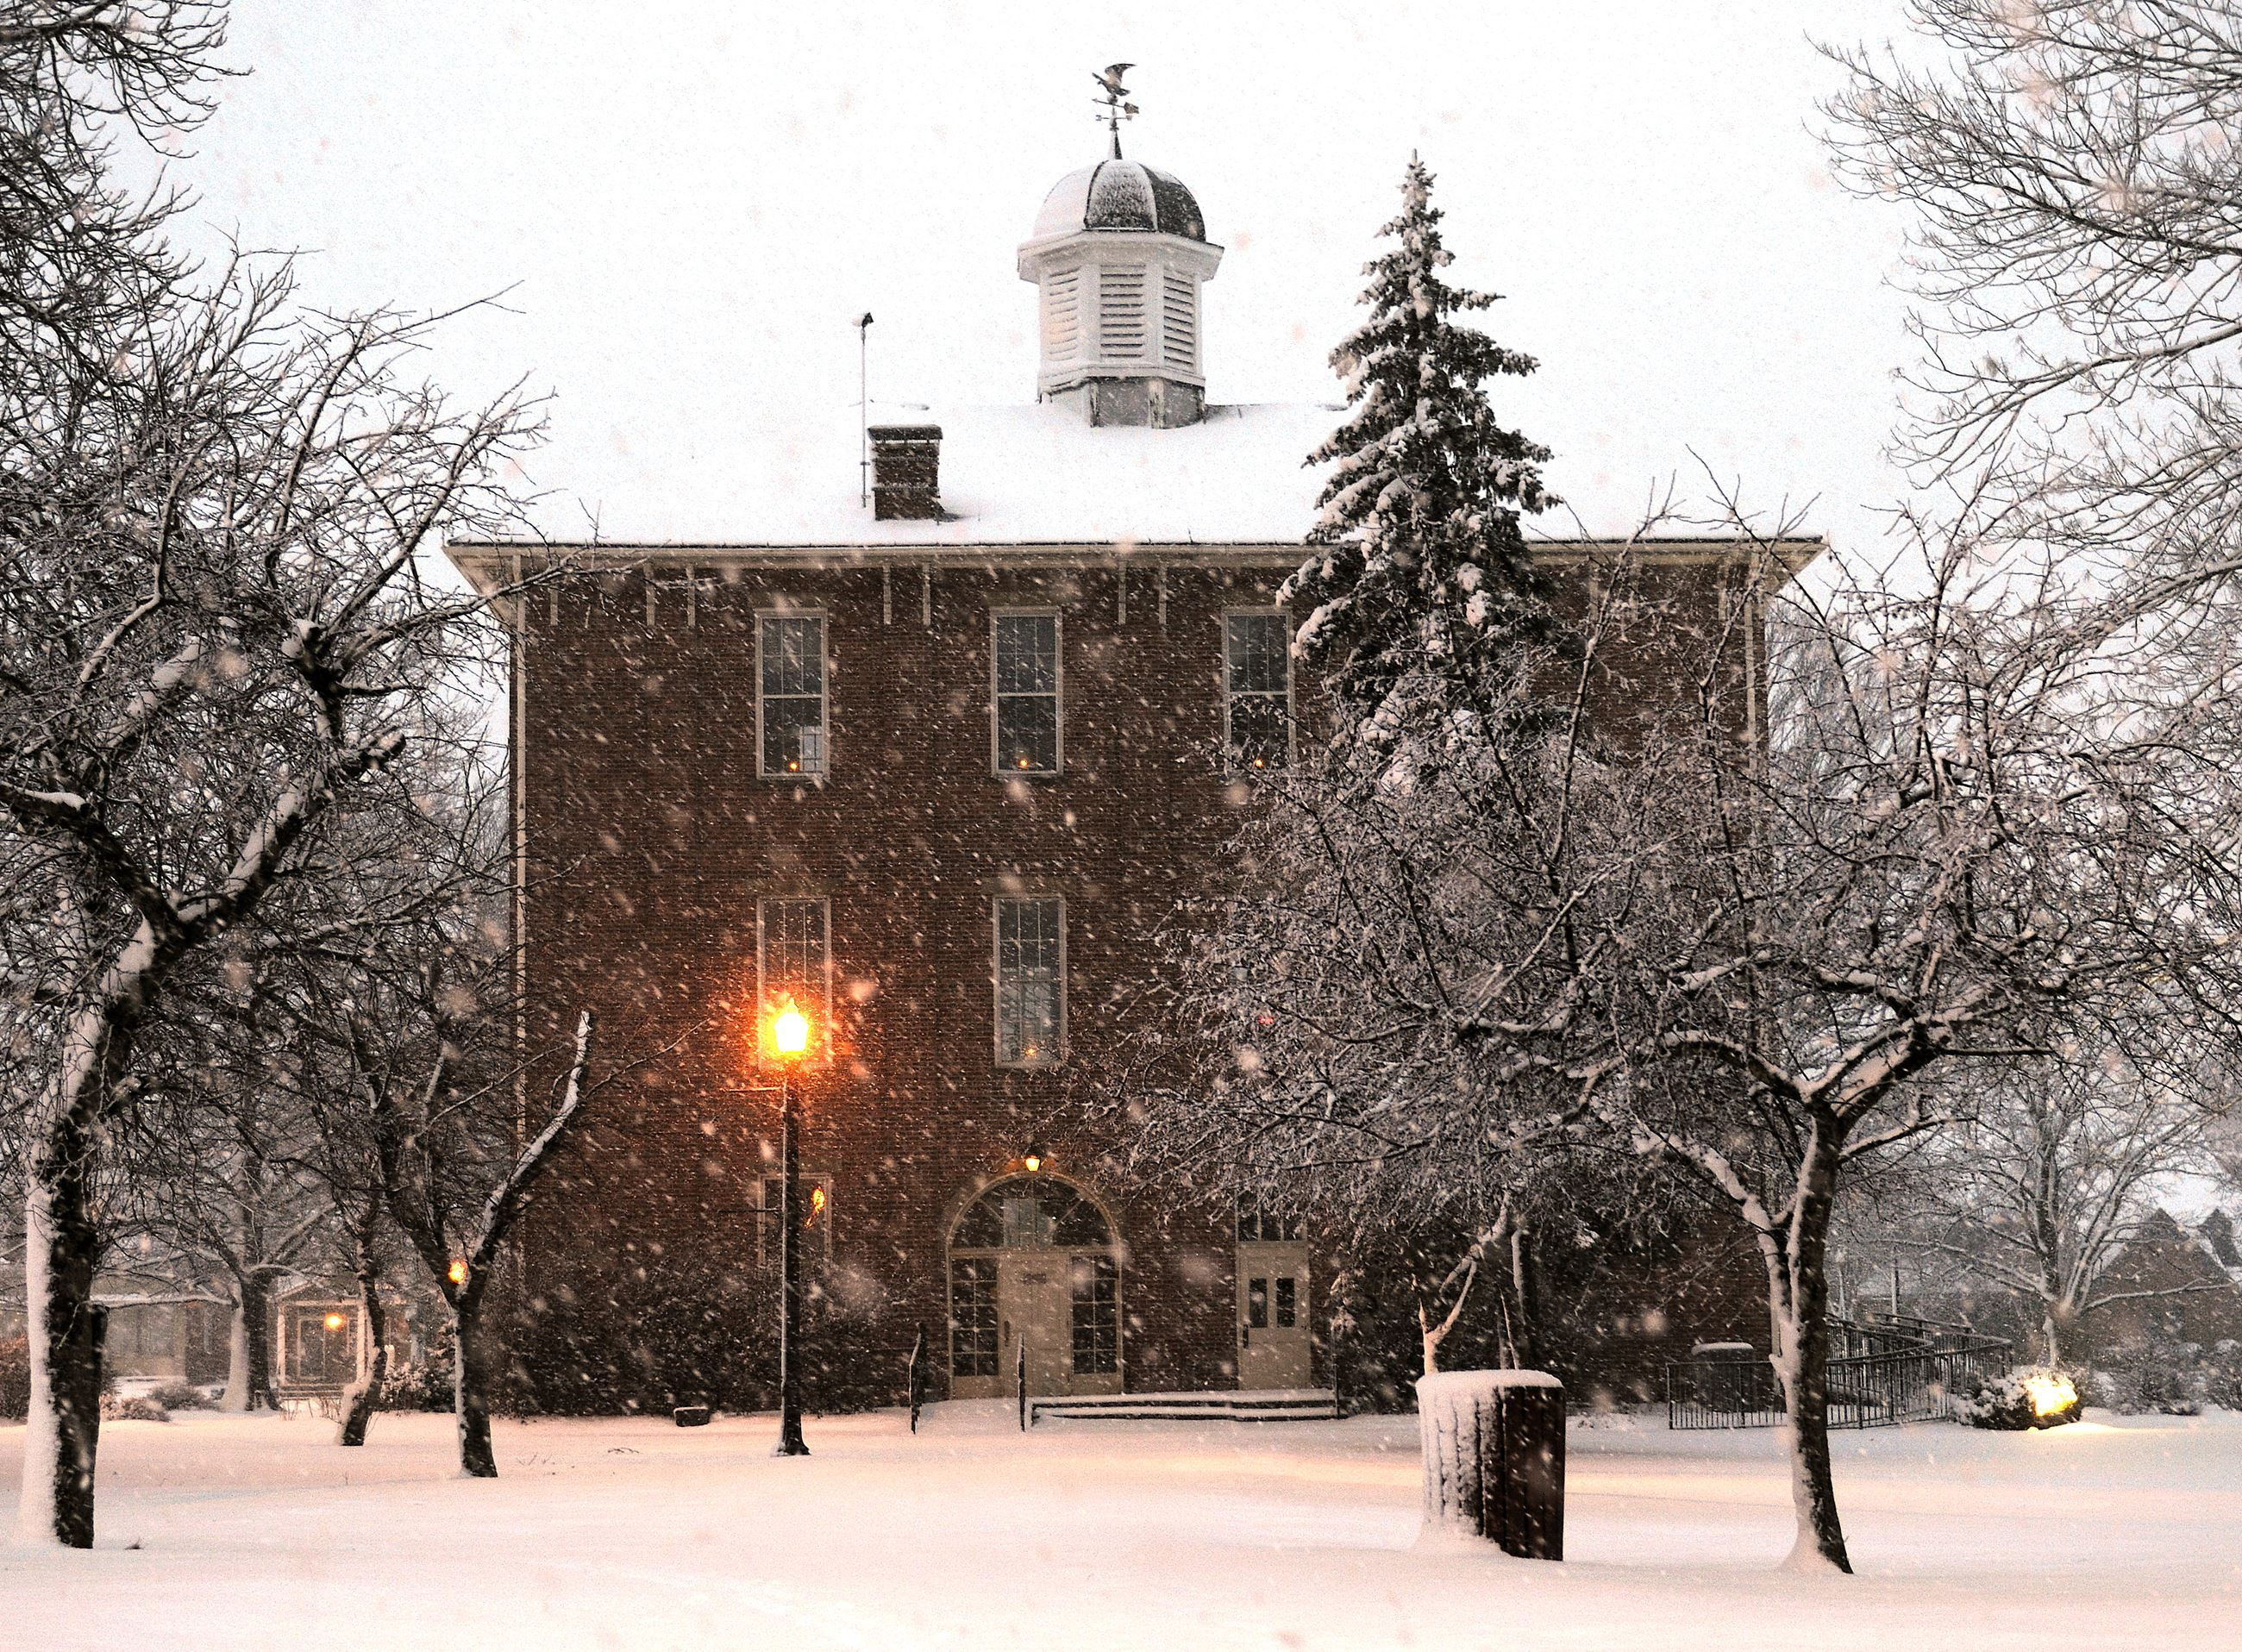 An outside winter view of town hall with snow and lighted lamp